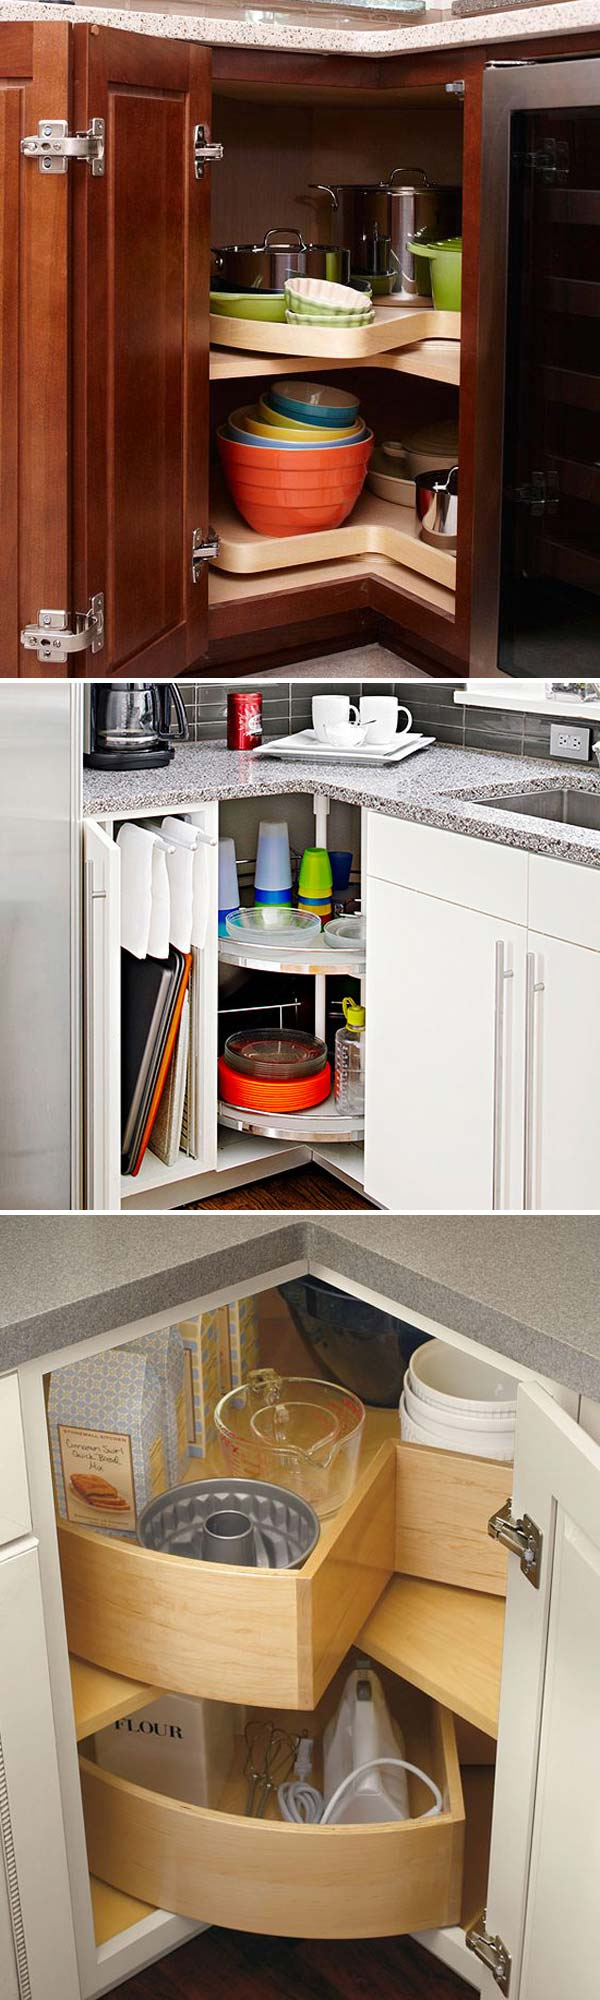 3 install a turntable organizer to steal back lost corner storage space lazy susan can make kitchen items very accessible in that hardtoreach corners